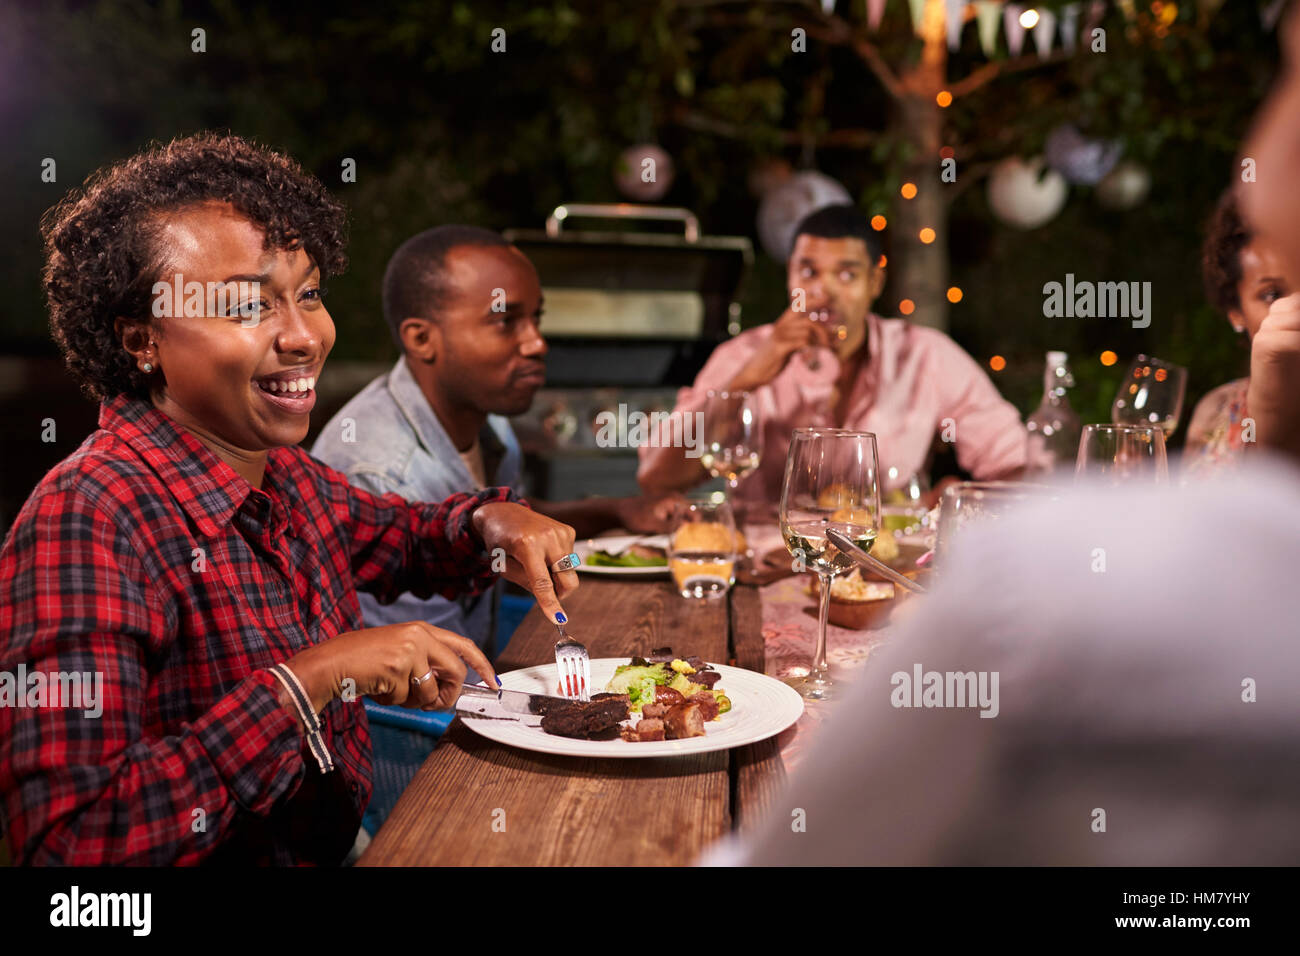 Minneapolis Minnesota USA Adult Black Family Enjoy Dinner And Conversation In Garden